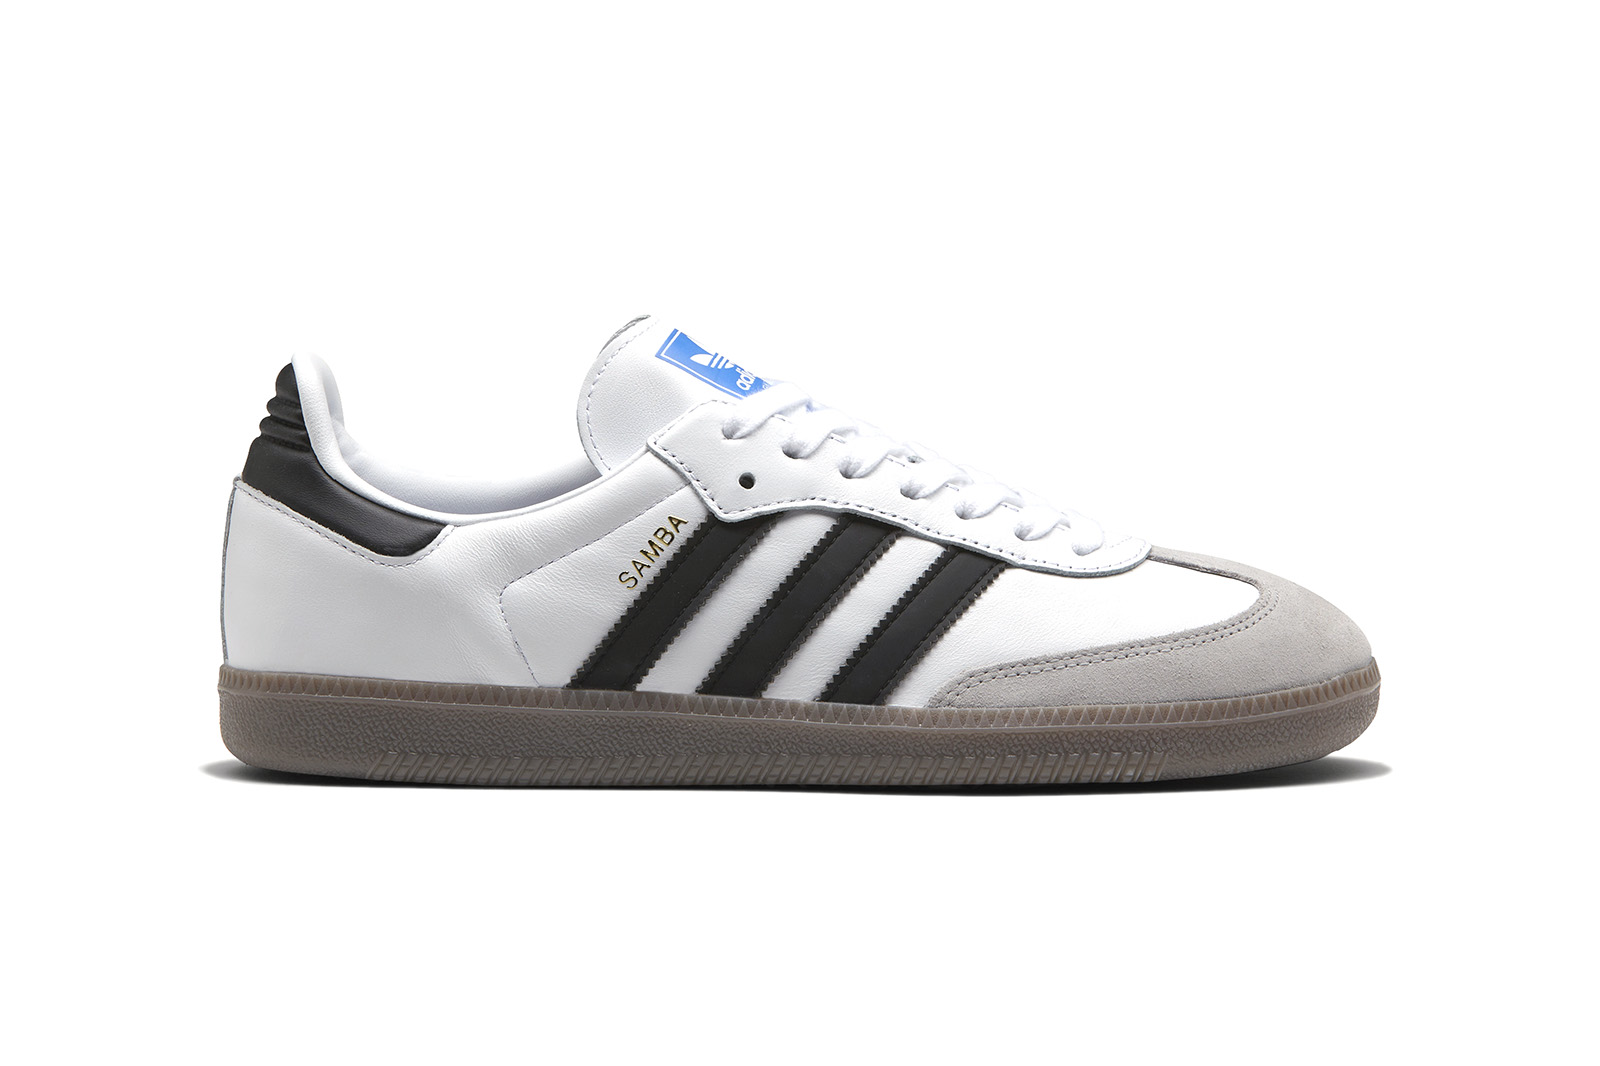 adidas Originals 'Samba' Classic Black White Details To Buy Purchase Availability For Sale Pricing